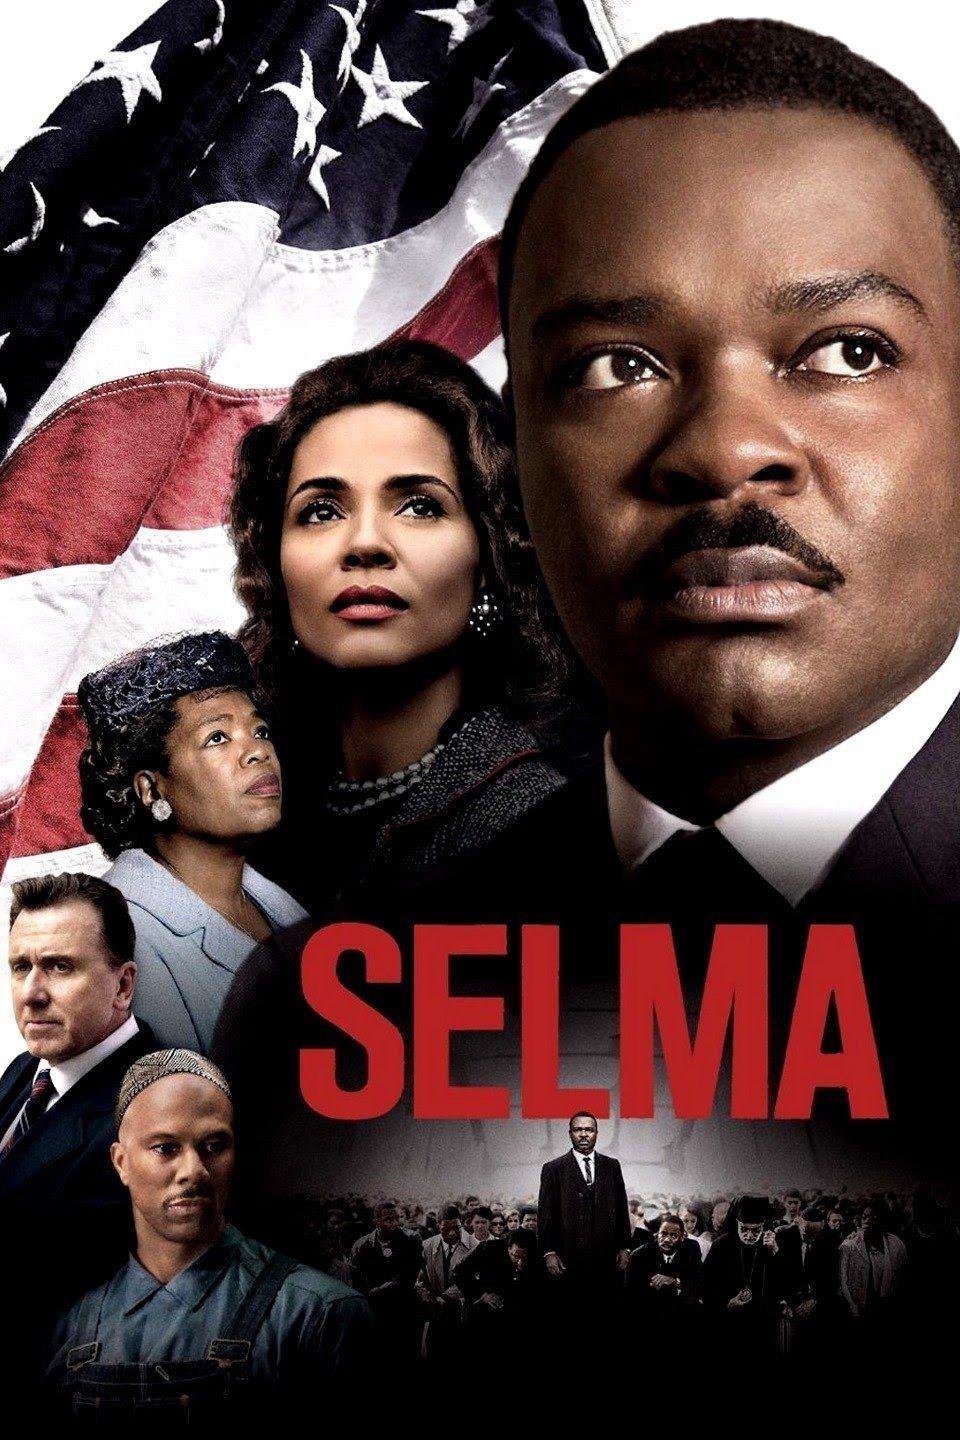 """<p><a class=""""link rapid-noclick-resp"""" href=""""https://www.amazon.com/Selma-David-Oyelowo/dp/B00S0X4HK8/ref=sr_1_1?dchild=1&keywords=selma&qid=1614189751&sr=8-1&tag=syn-yahoo-20&ascsubtag=%5Bartid%7C10067.g.15907978%5Bsrc%7Cyahoo-us"""" rel=""""nofollow noopener"""" target=""""_blank"""" data-ylk=""""slk:Watch Now"""">Watch Now</a></p><p>Ava DuVernay directed this historical drama that is based on the 1965 voting rights marches from Selma to Montgomery led by Martin Luther King Jr., <a href=""""https://www.townandcountrymag.com/society/politics/a32767295/john-lewis-philanthropy/"""" rel=""""nofollow noopener"""" target=""""_blank"""" data-ylk=""""slk:John Lewis"""" class=""""link rapid-noclick-resp"""">John Lewis</a>, and Hosea Williams, and which led to the passage of the Voting Rights Act.</p>"""